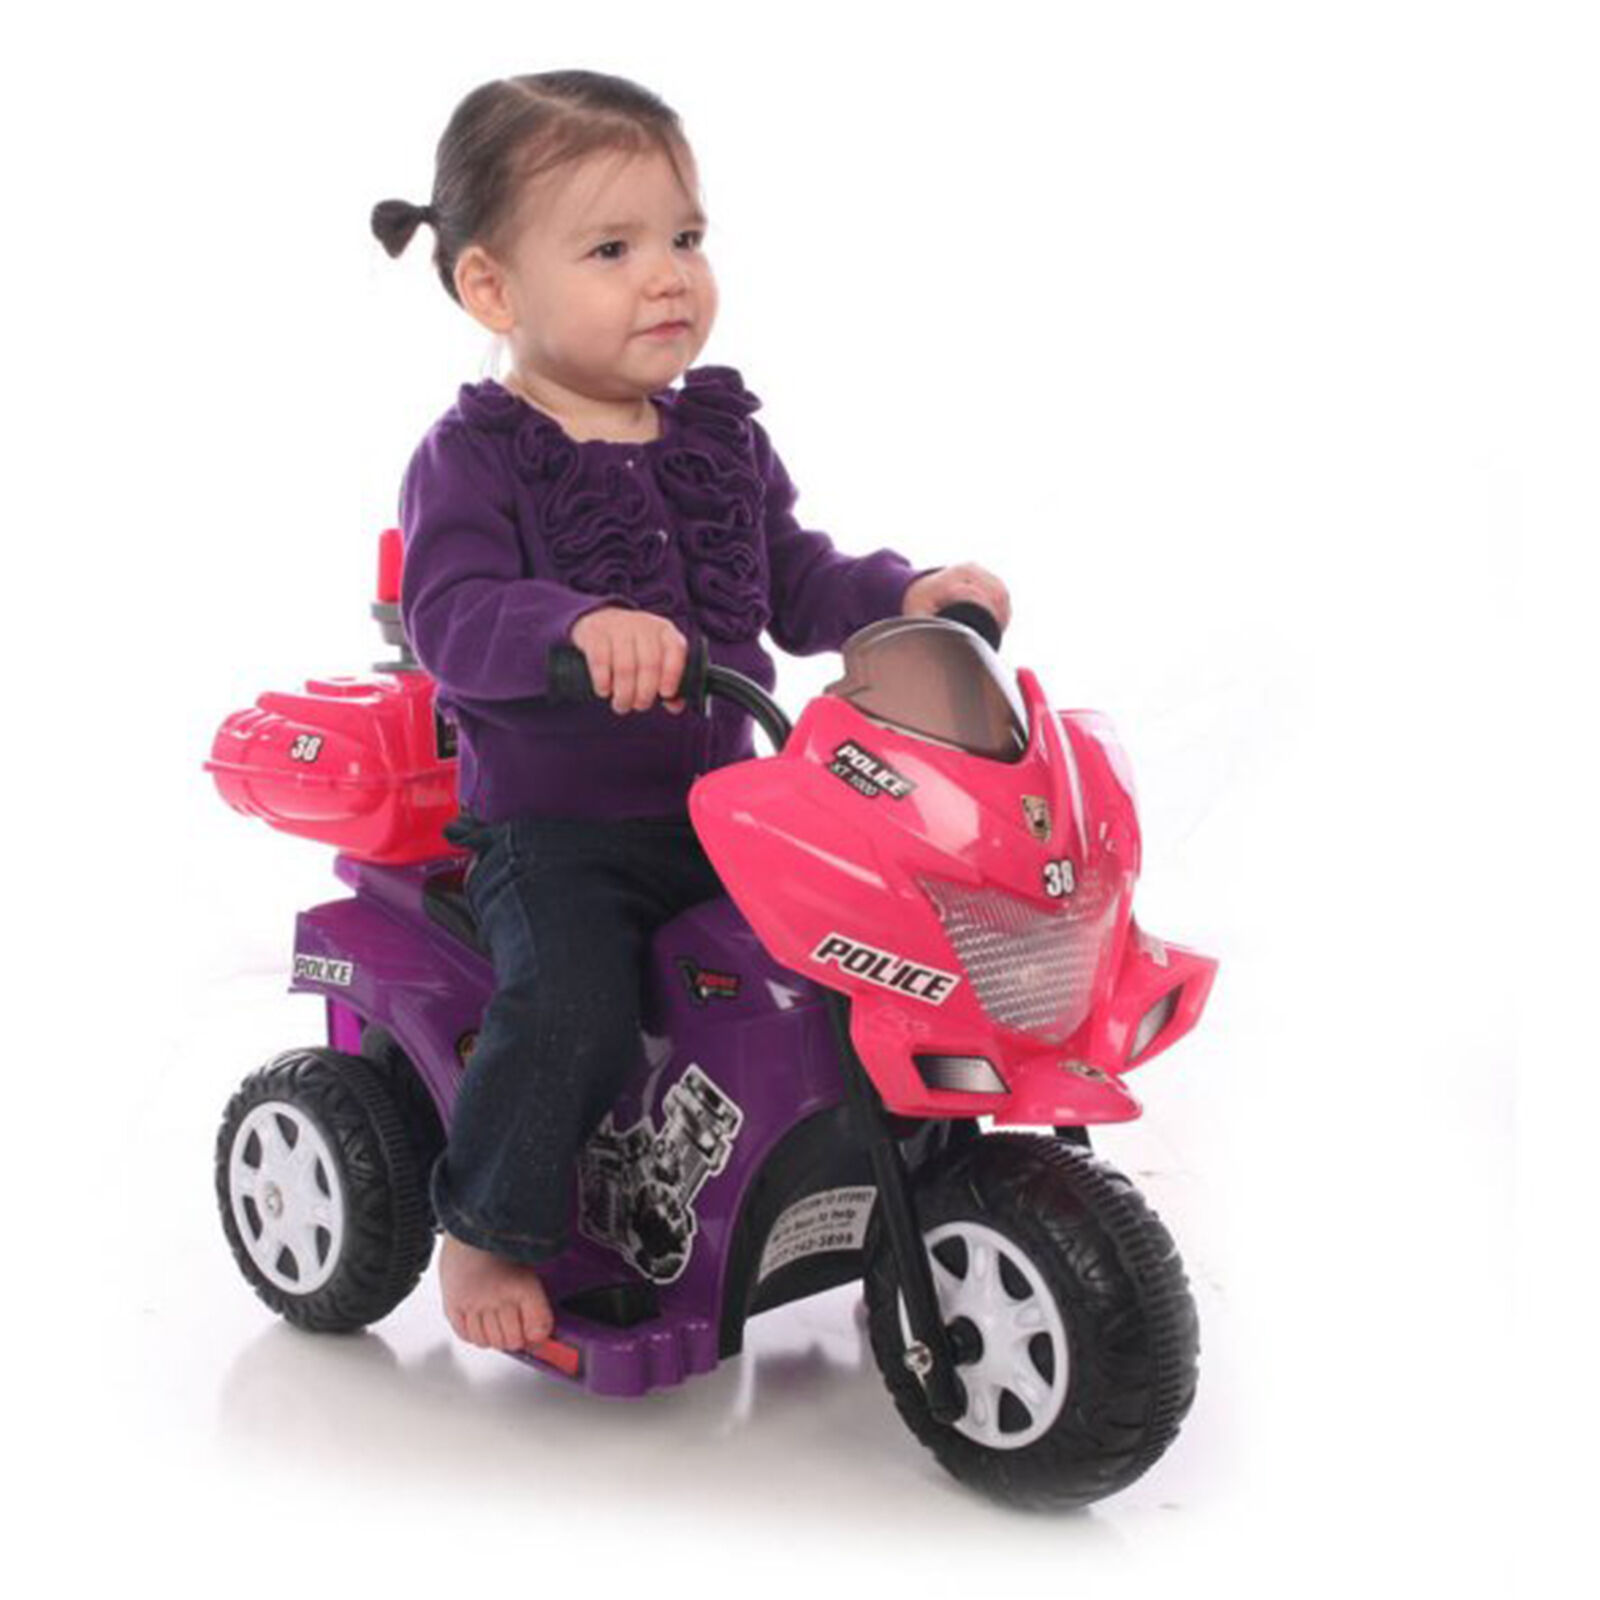 Motorcycle Ride On Toy Battery Powered 6V Electric Kid Motor